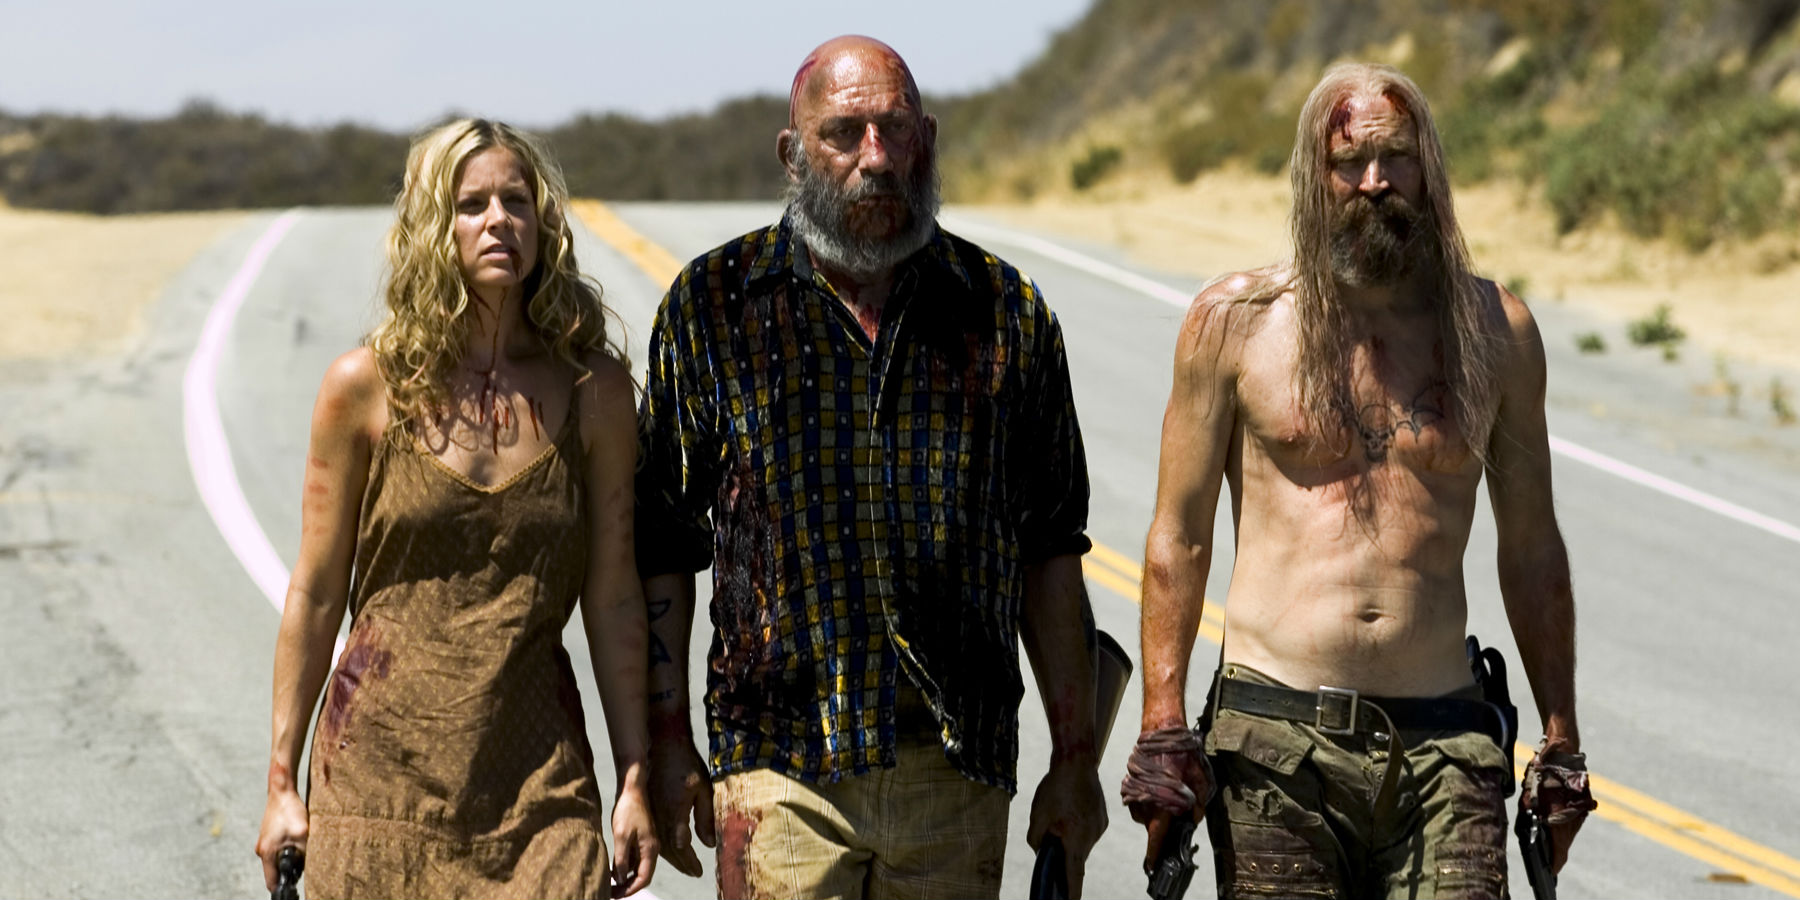 Devil's Rejects - Moon, Haig, and Moseley